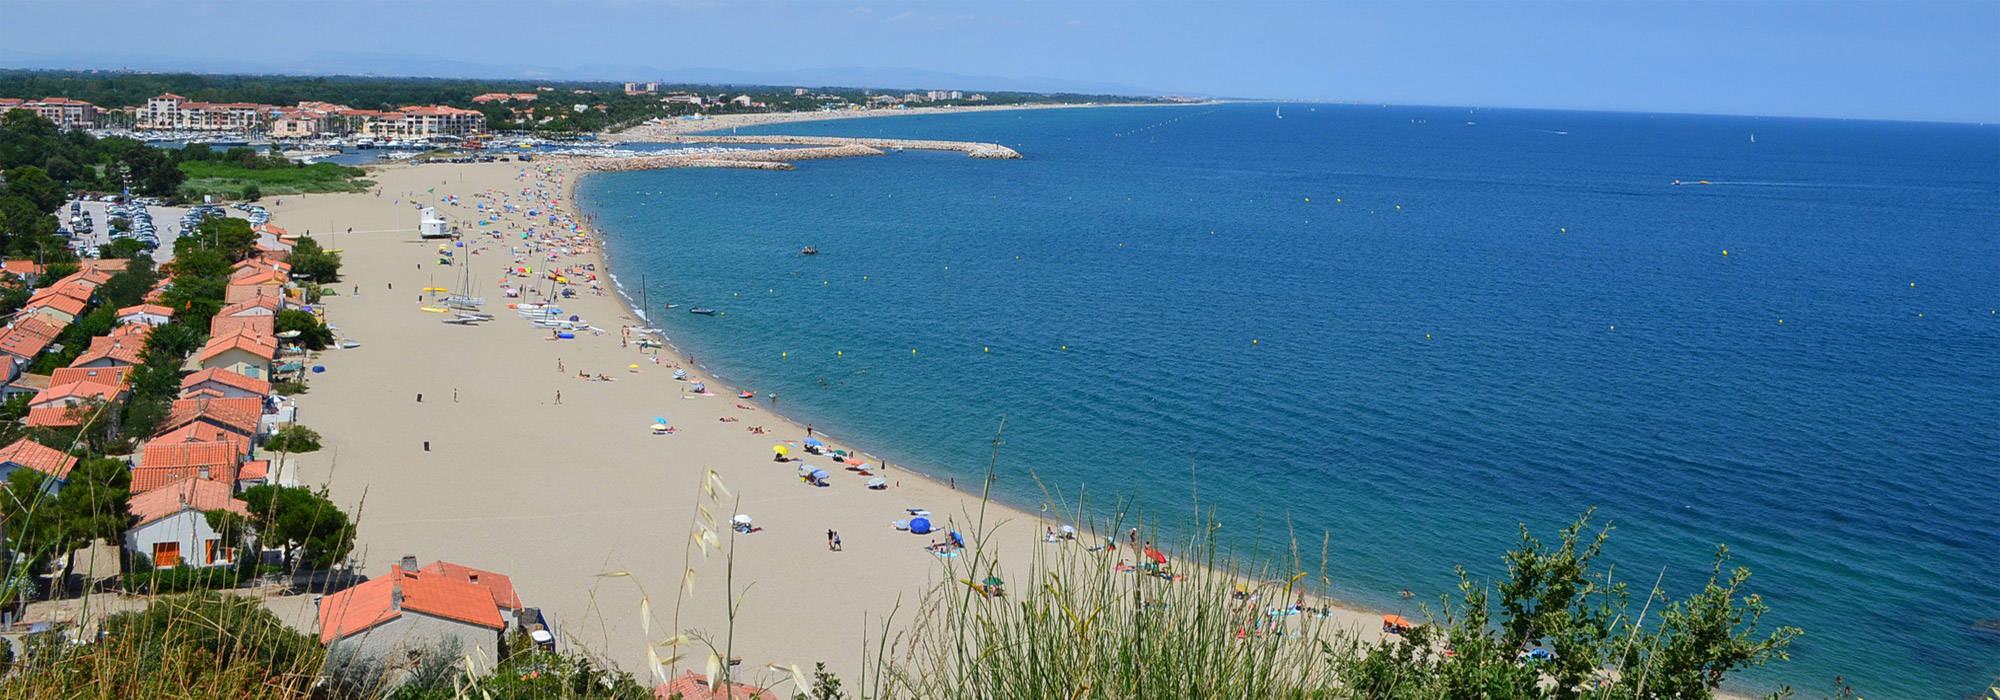 Racou plage